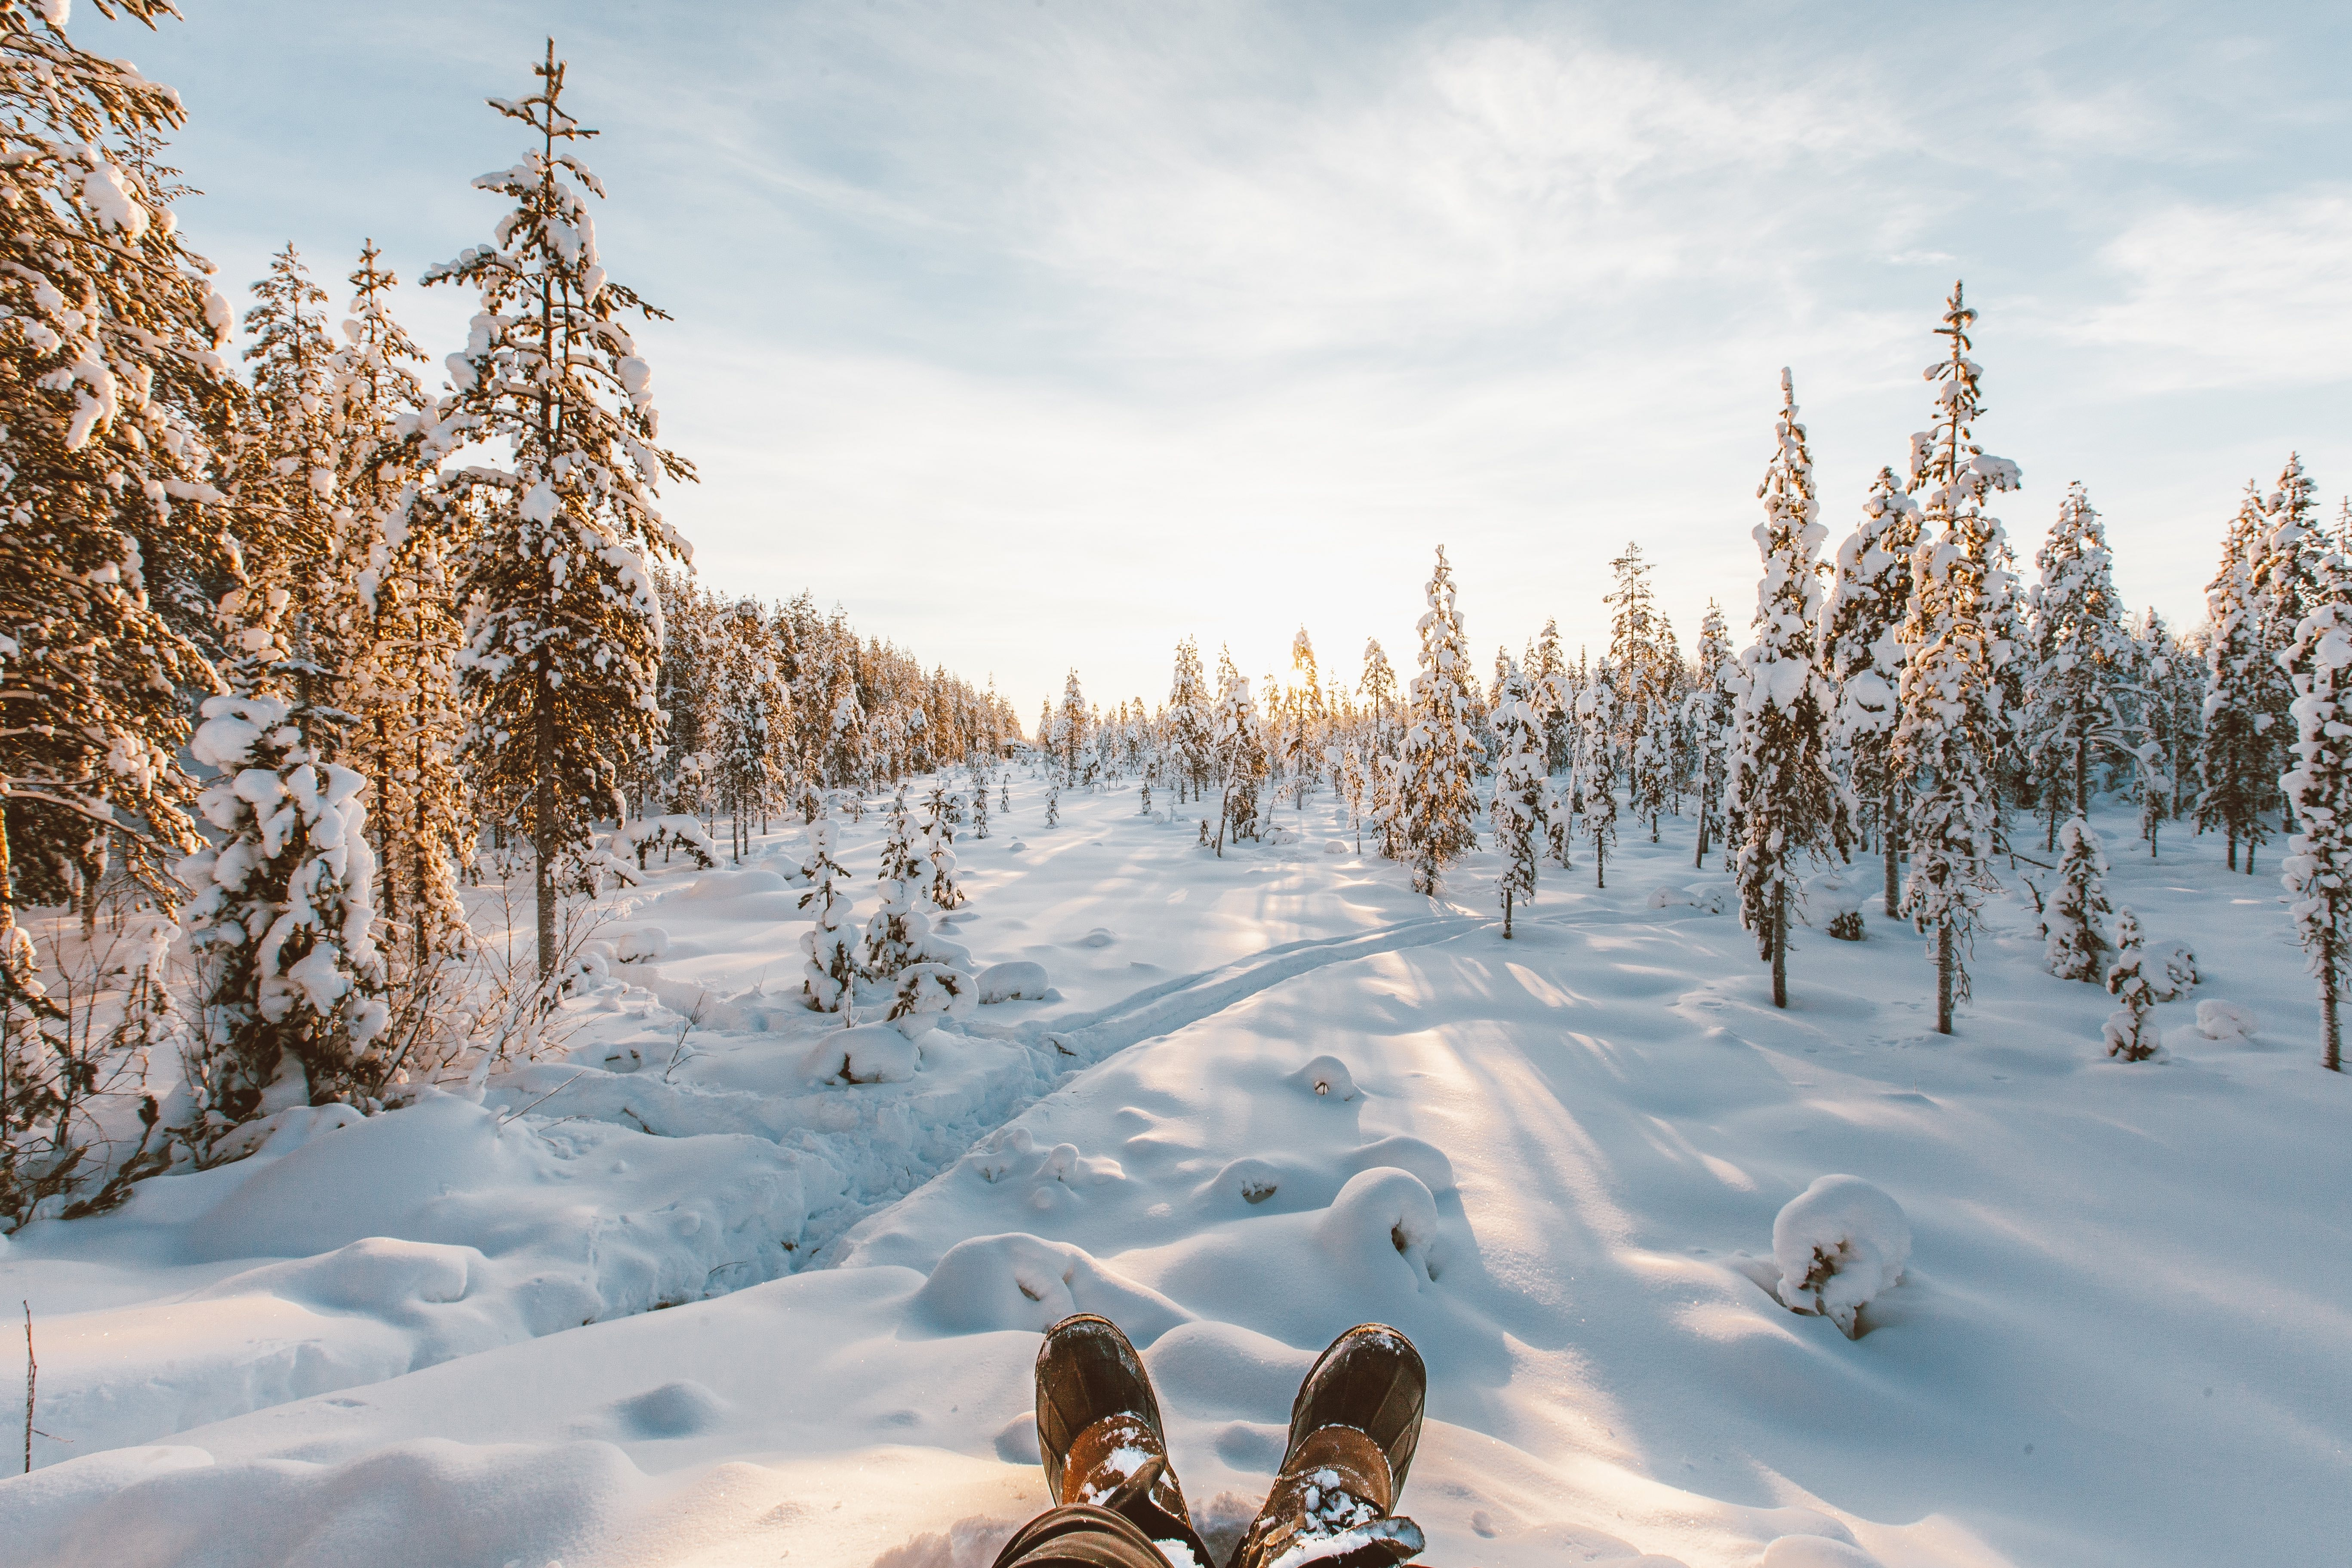 This killer view needs a pair of killer boots to keep your feet warm.